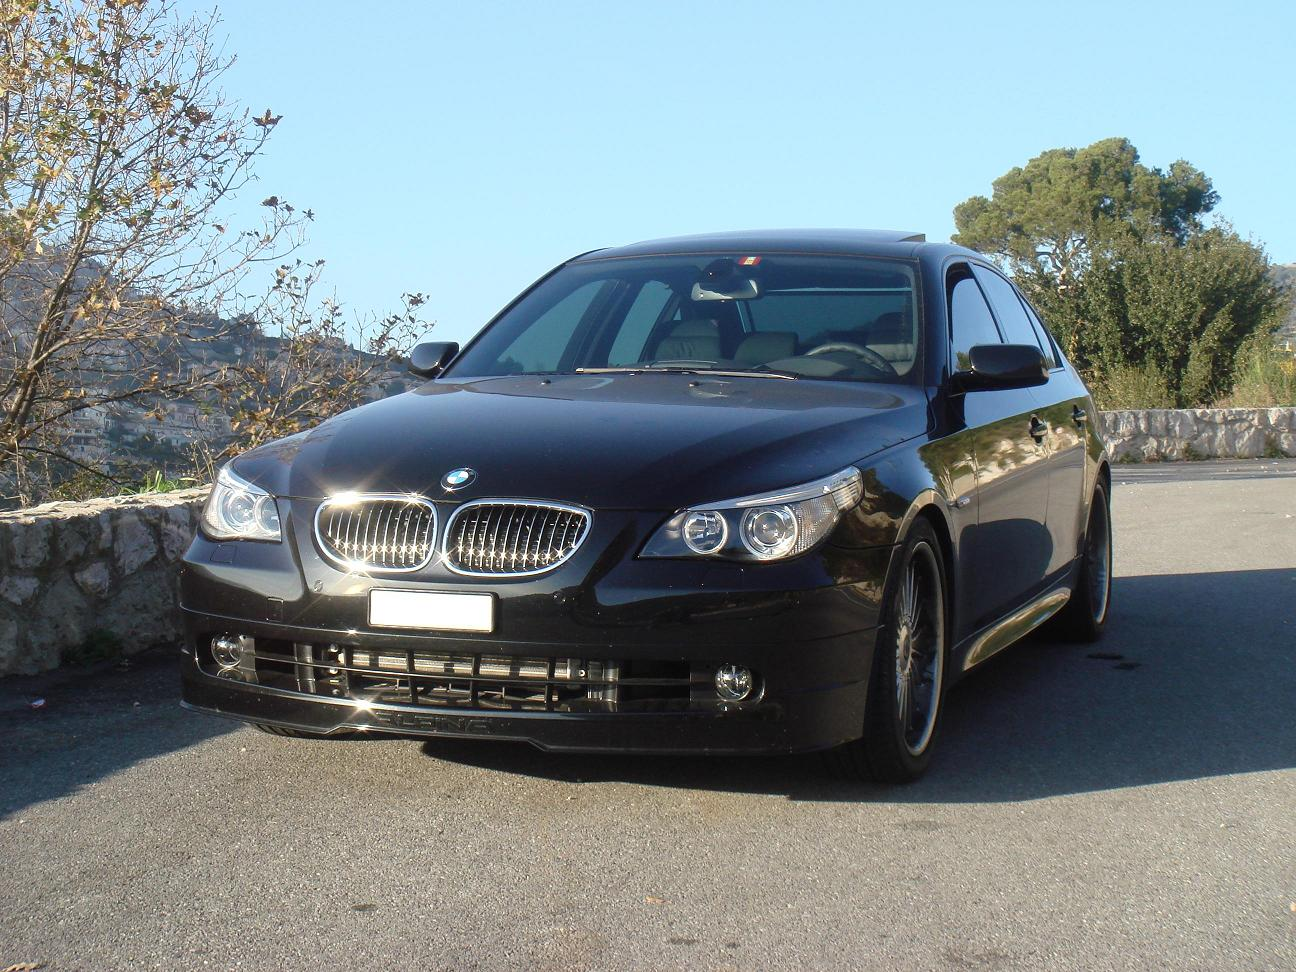 B Alpina Review From An Ex M Owner BMW M Forum And M Forums - Bmw b5 alpina for sale